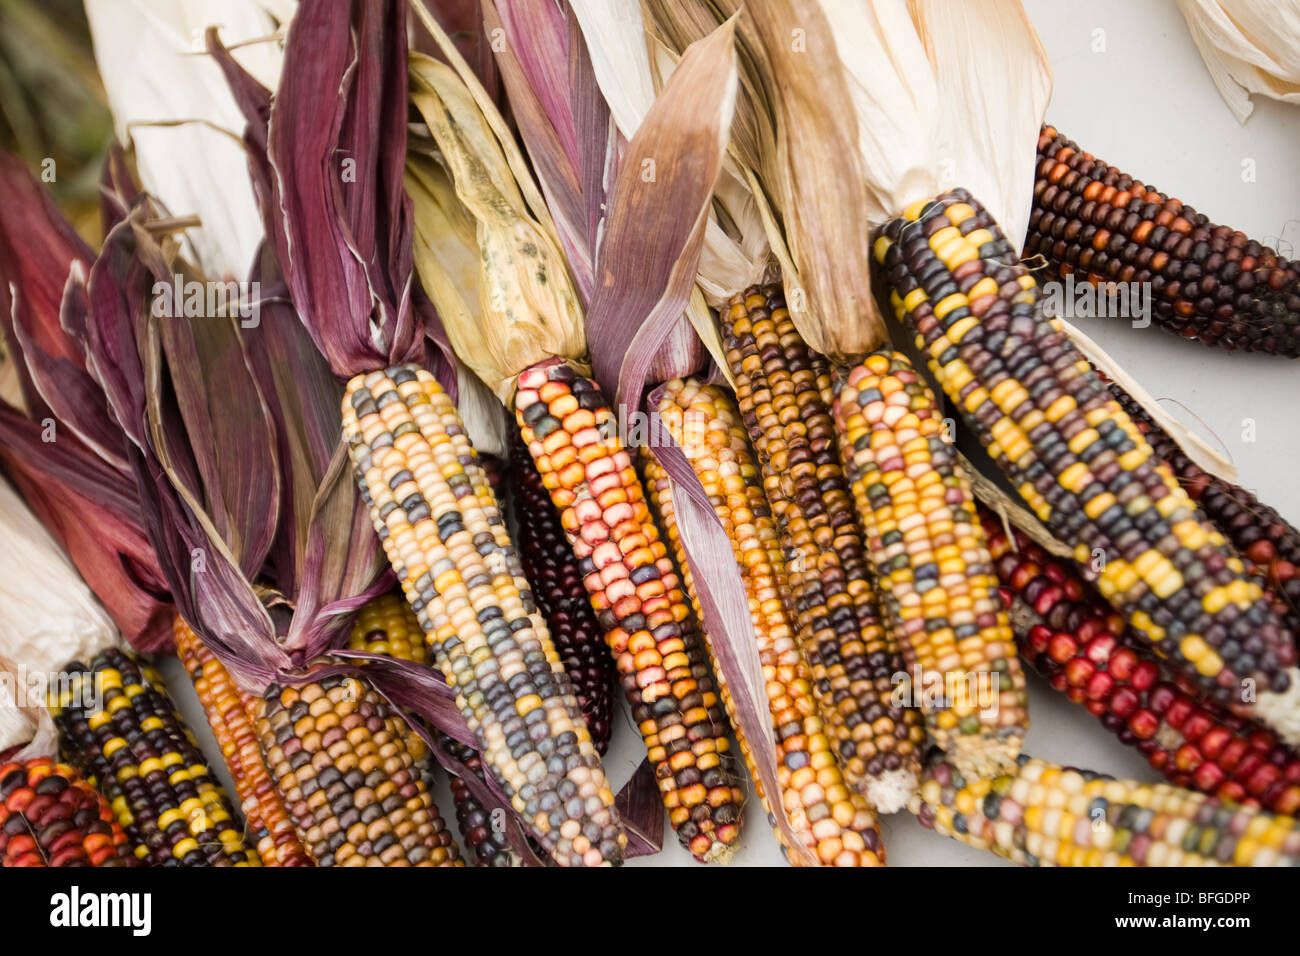 corn (ears of corn) - Stock Image